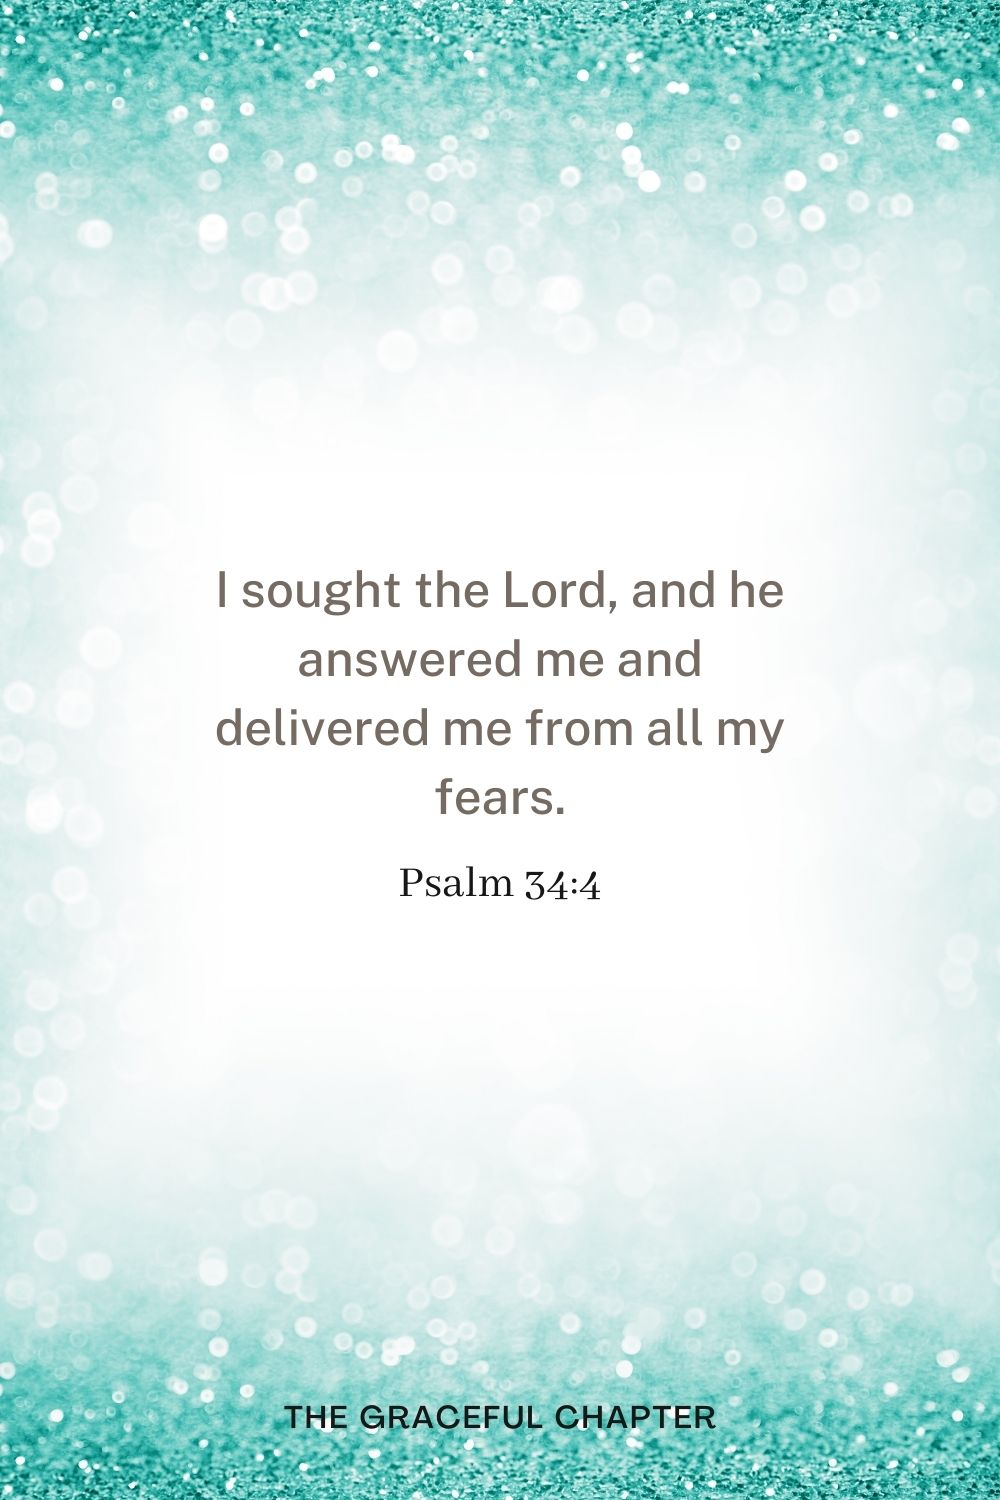 I sought the Lord, and he answered me and delivered me from all my fears. Psalm 34:4